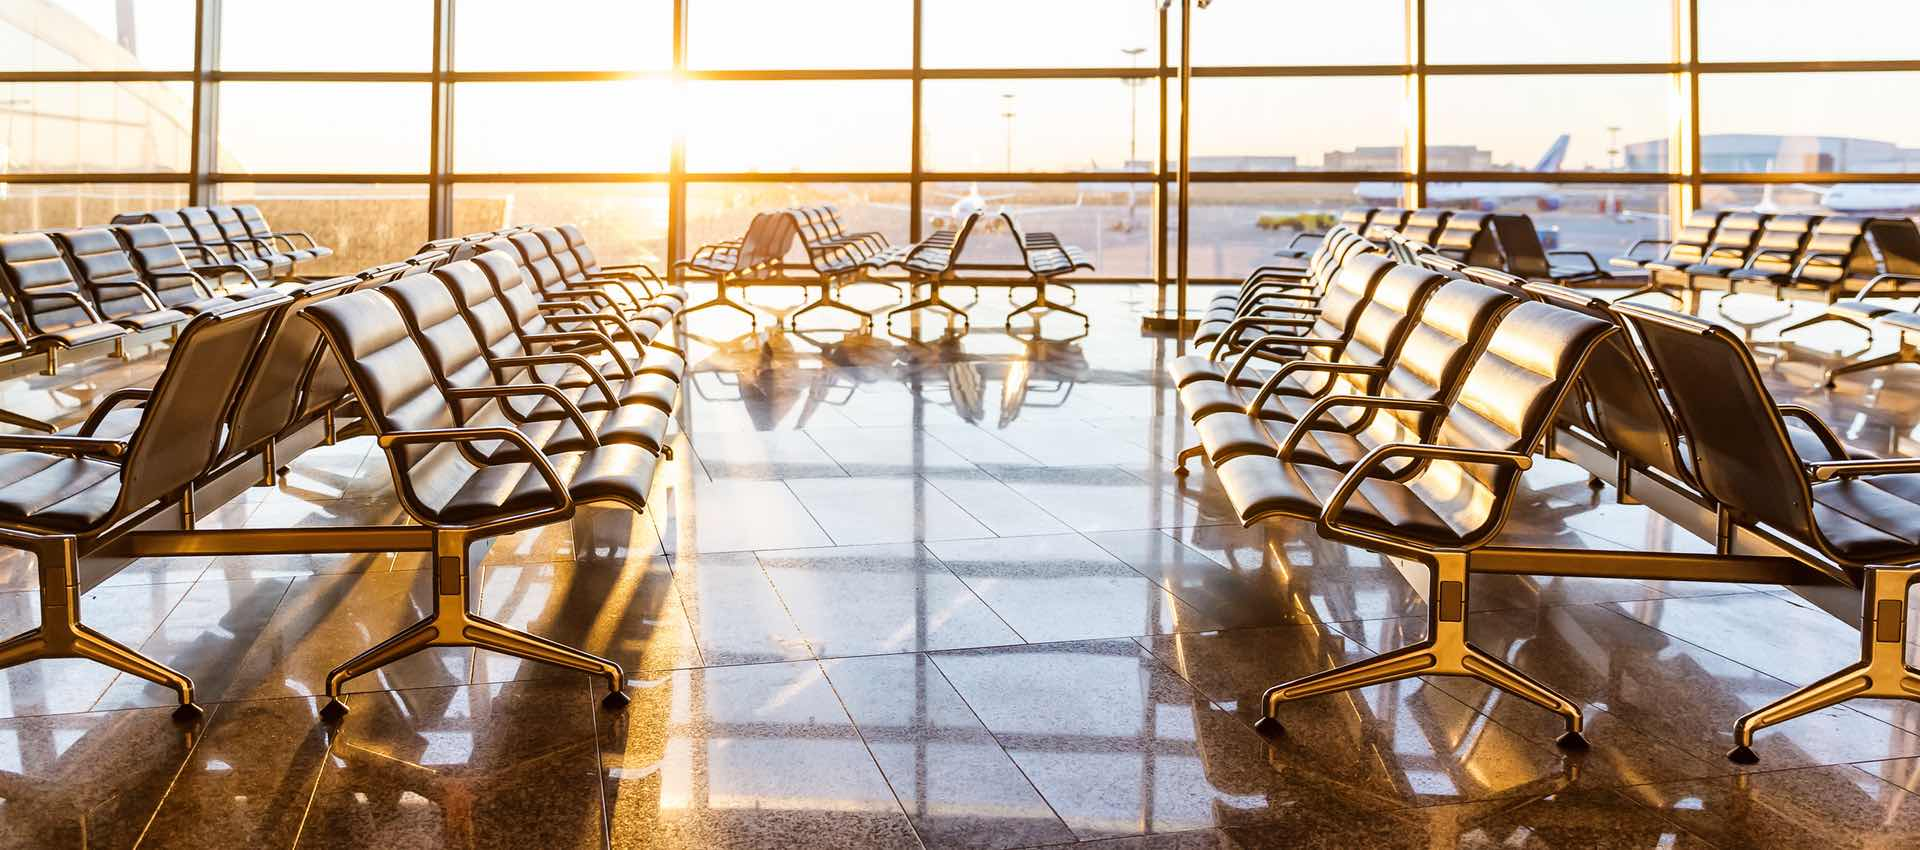 Clean airport departure lounge at sunrise